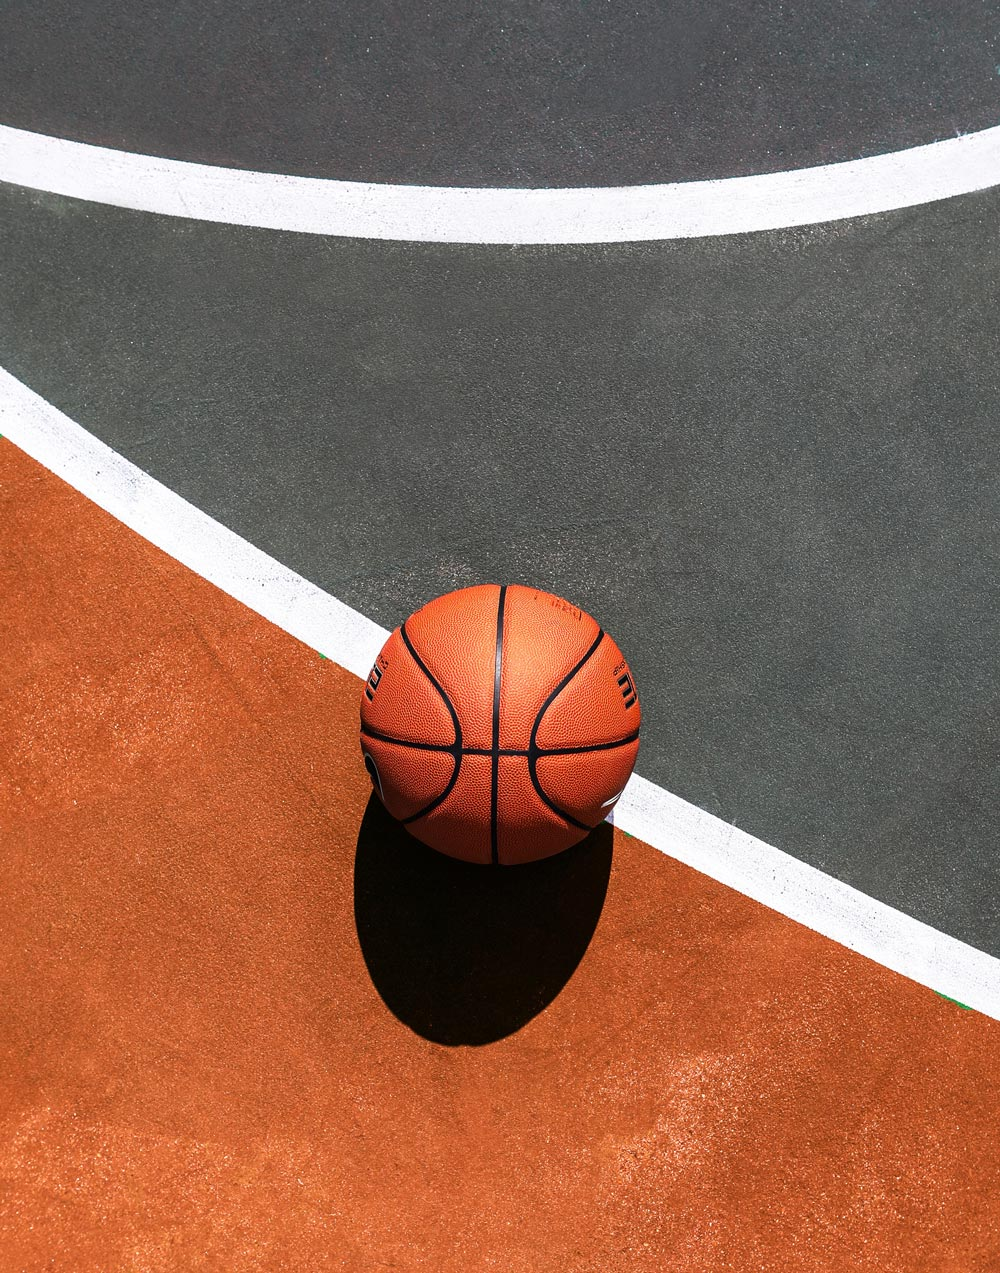 Topdown photo of a basketball on a sunny court.